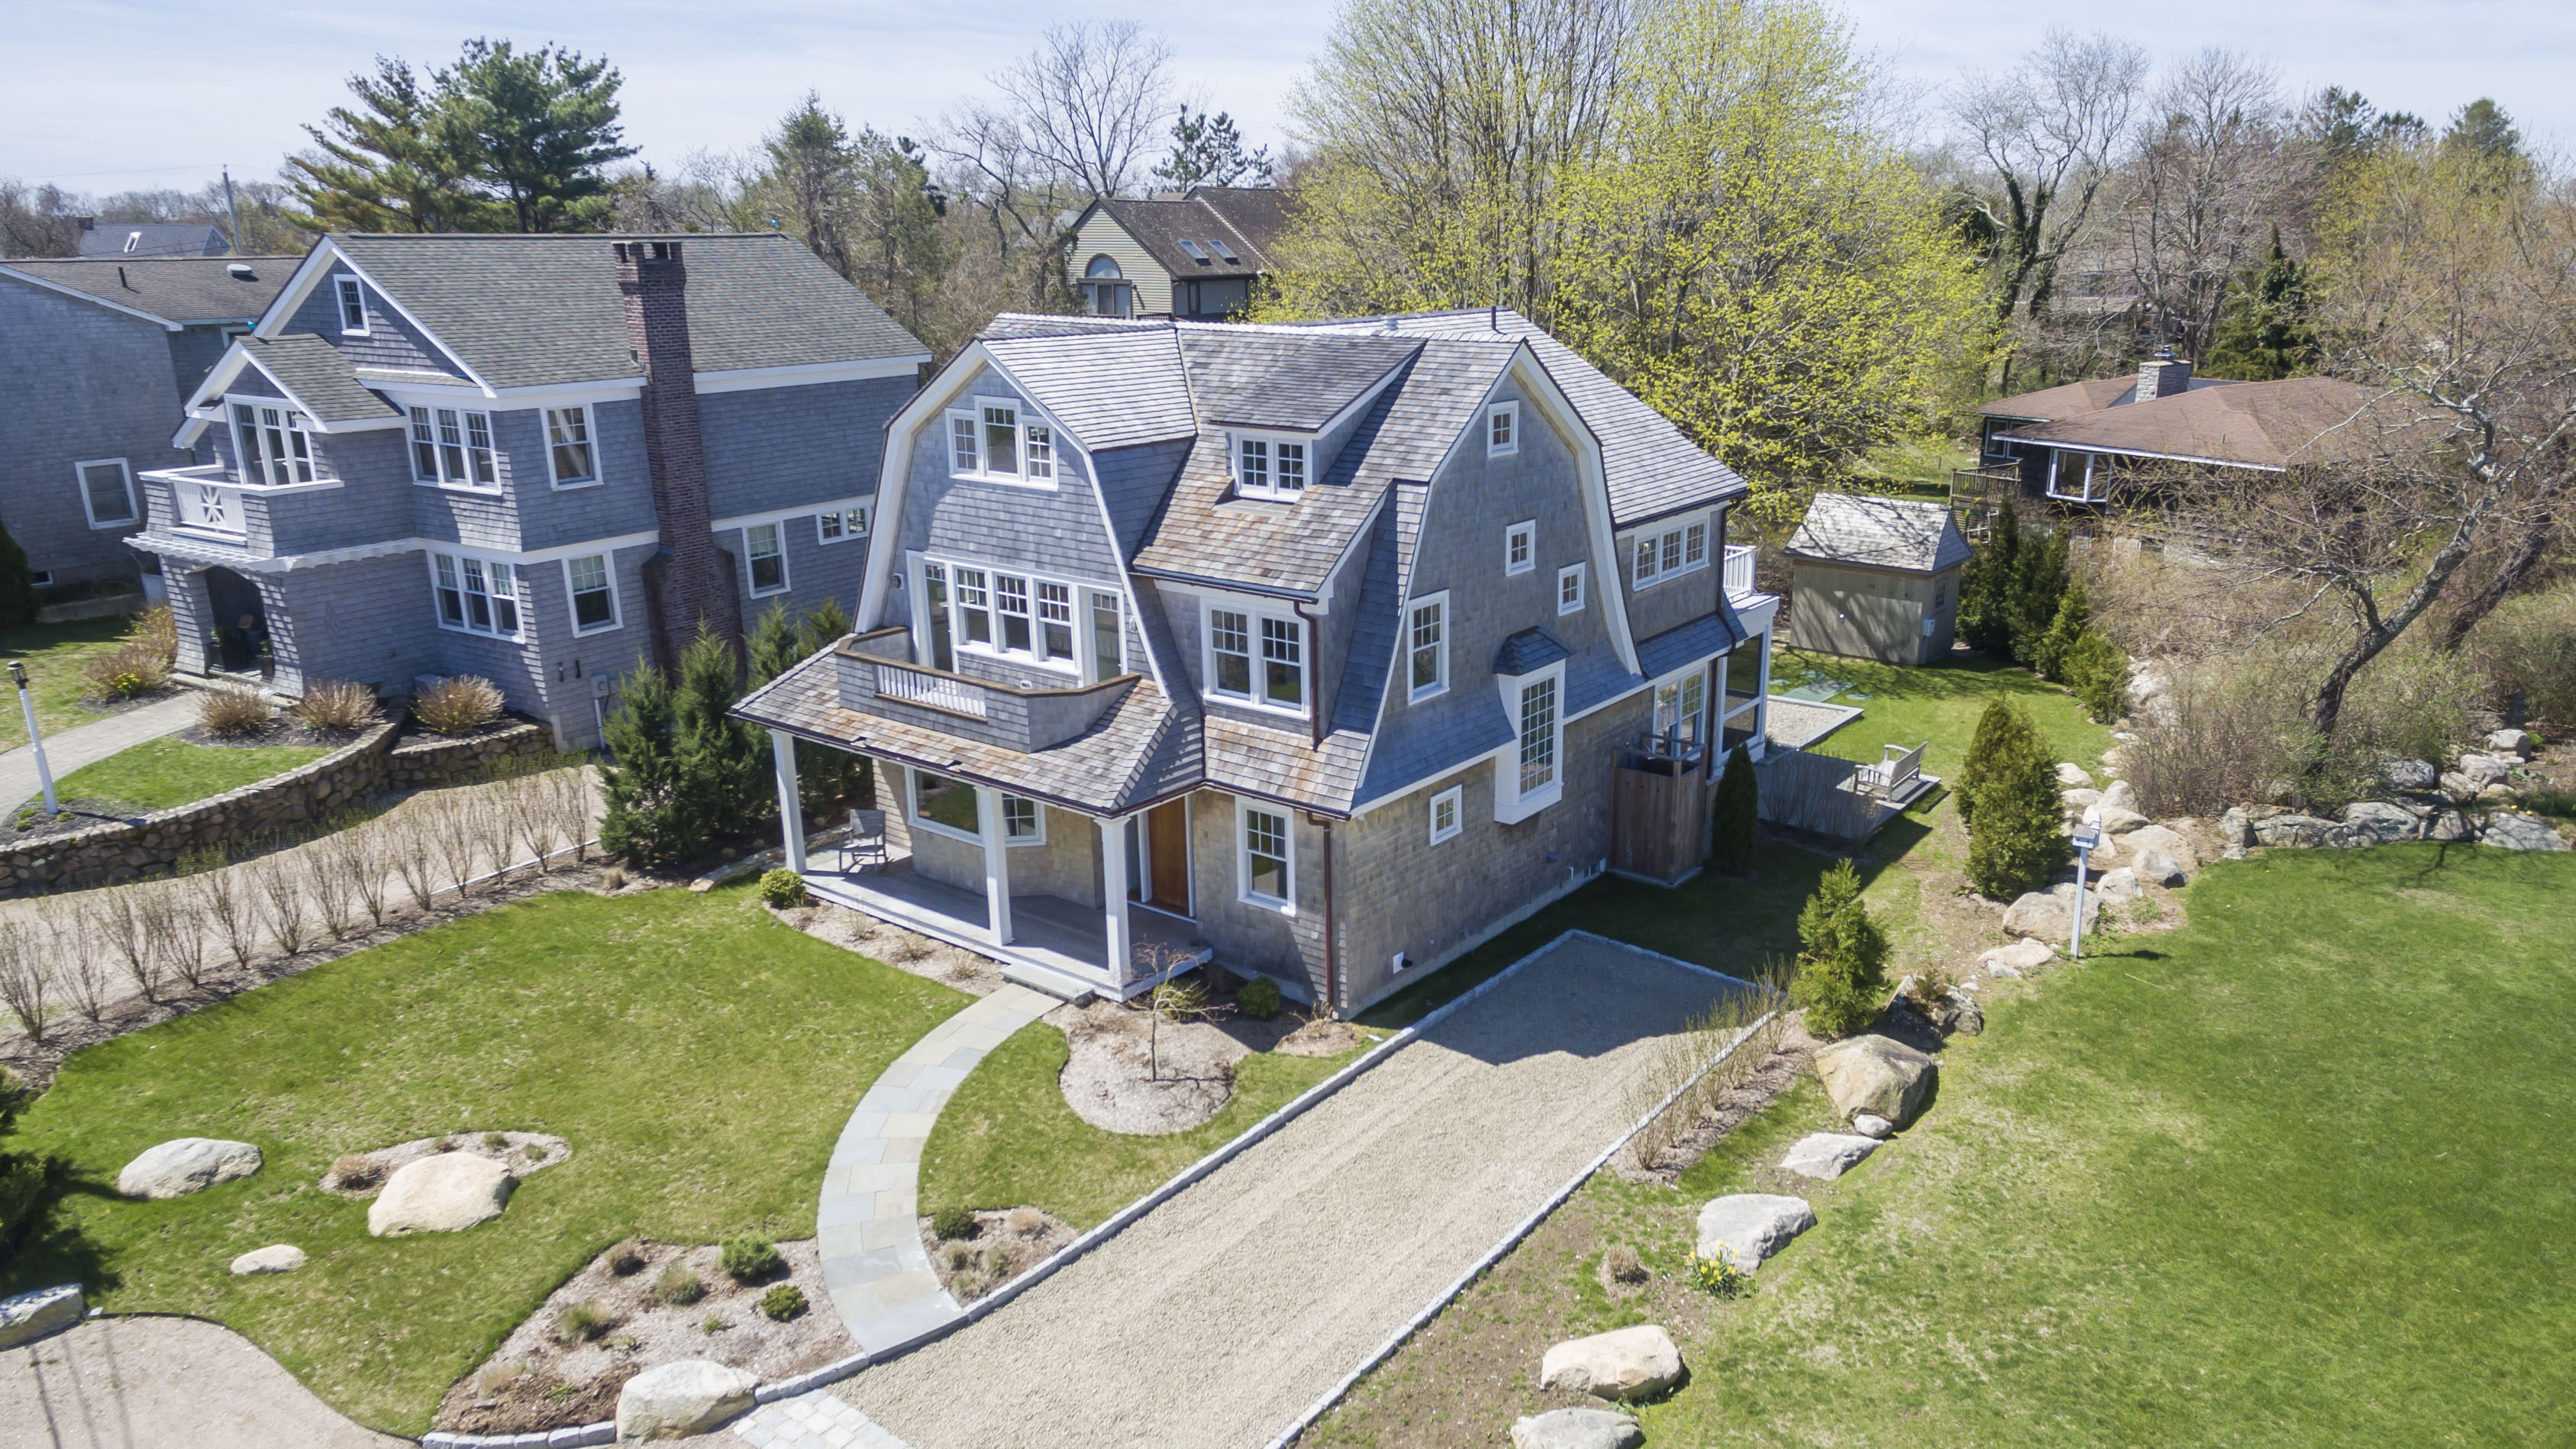 LILA DELMAN'S LORI JOYAL SELLS NEW CONSTRUCTION IN CHARLESTOWN'S CENTRAL BEACH FOR $1.975M